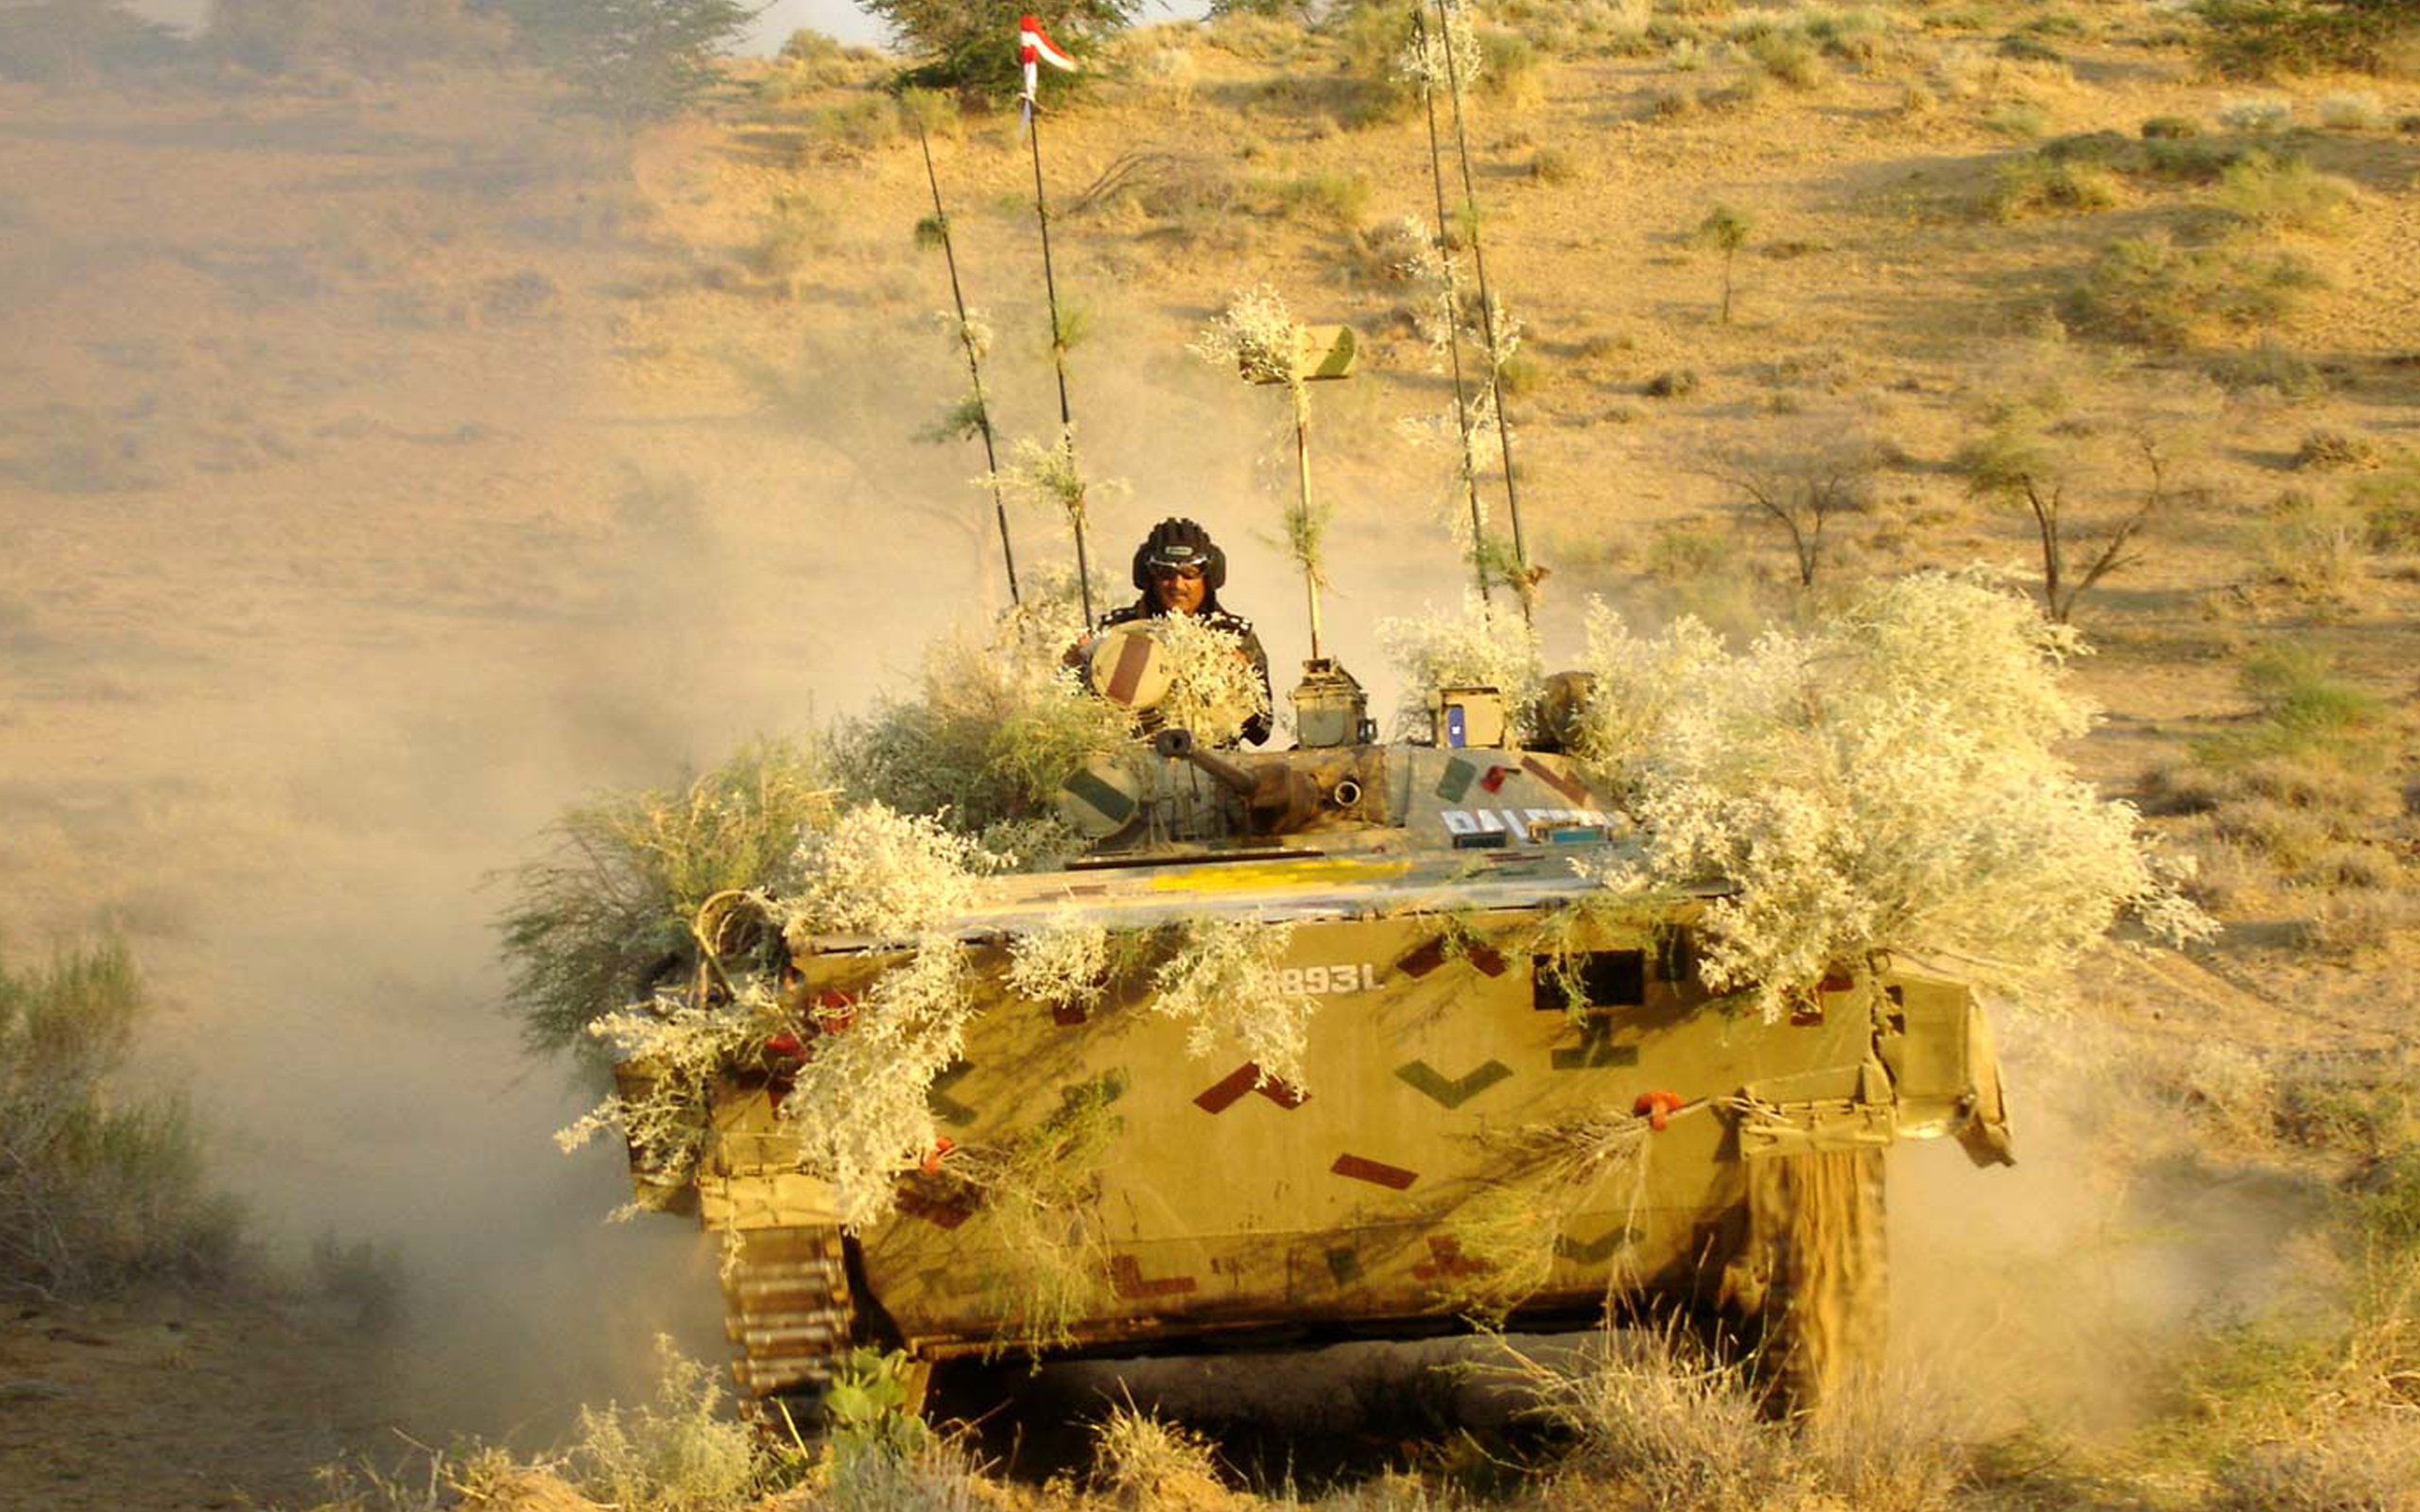 Indian Army Love Images Hd: Indian Army Vehicle Picture For Wallpaper